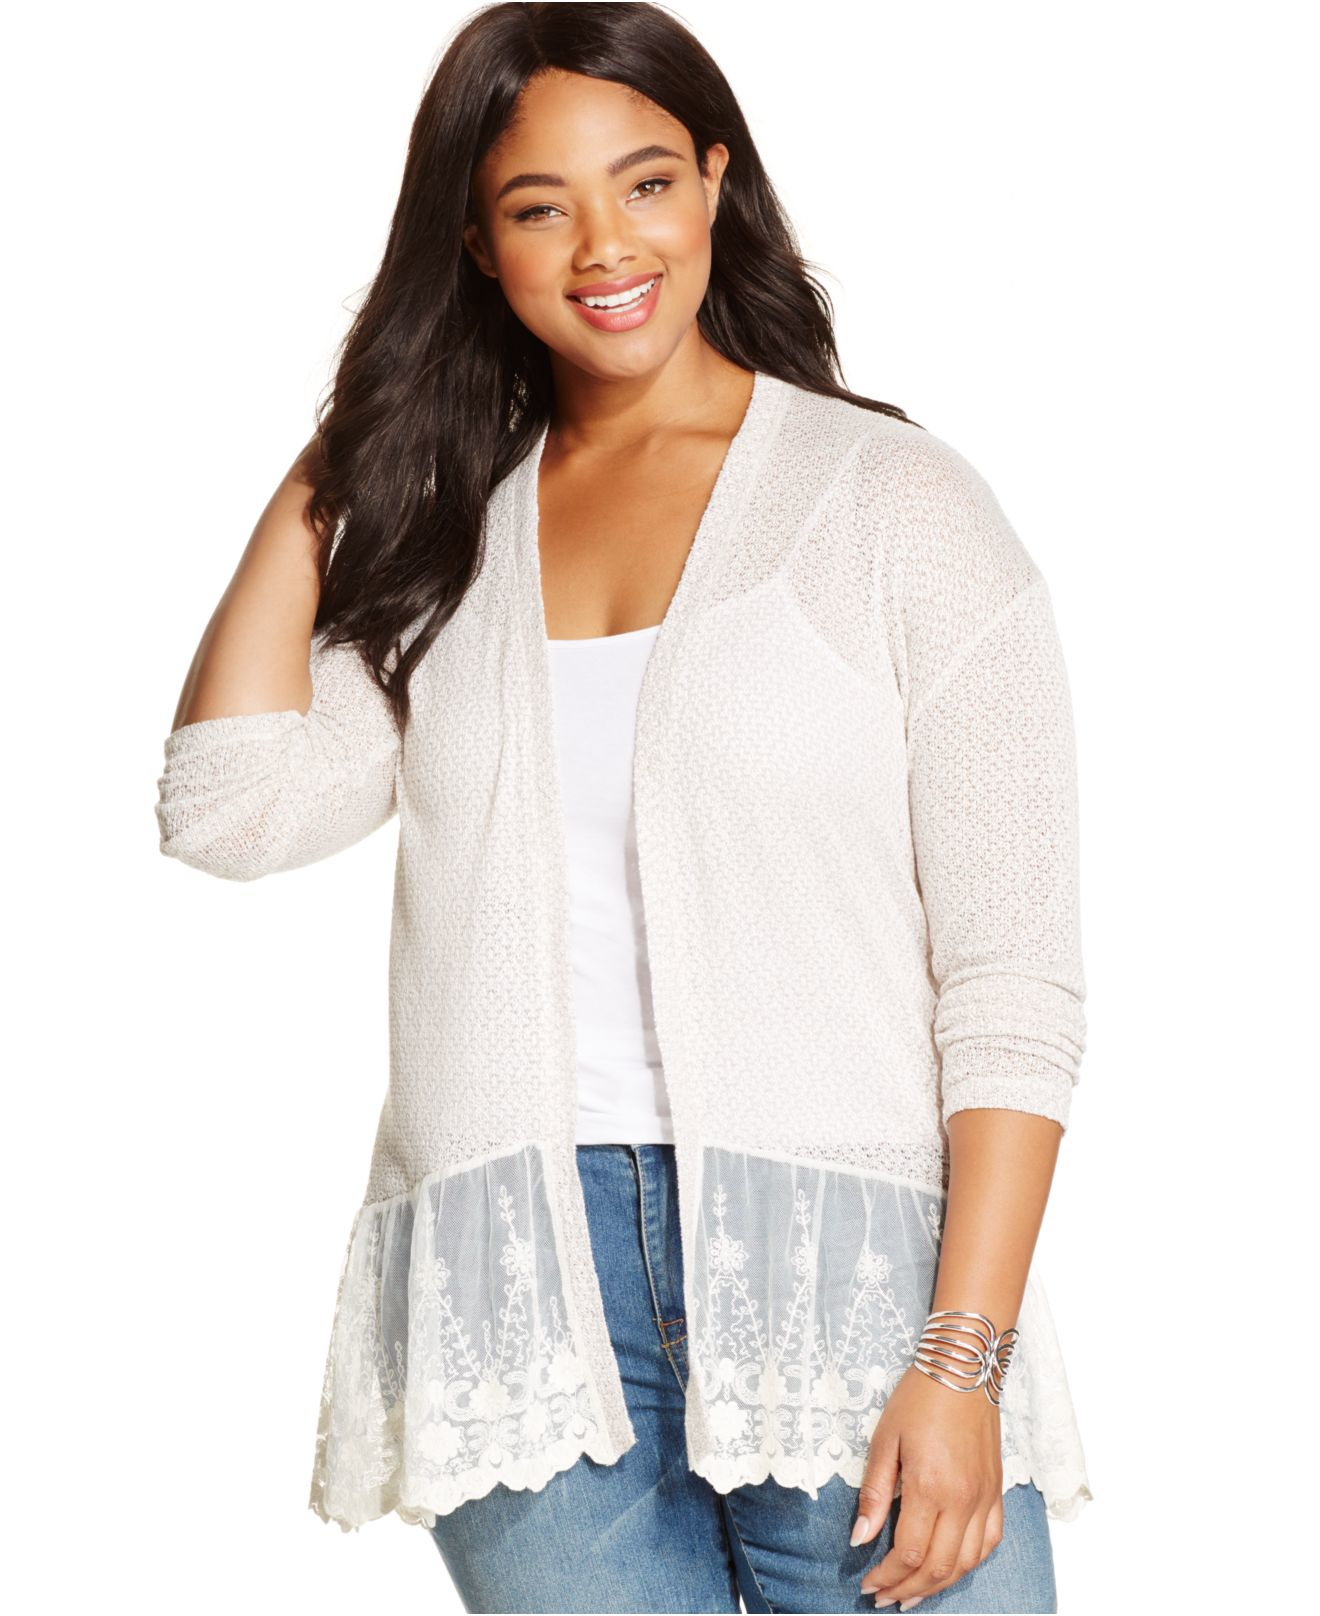 American rag Plus Size Lace-trim Peplum Cardigan in White | Lyst